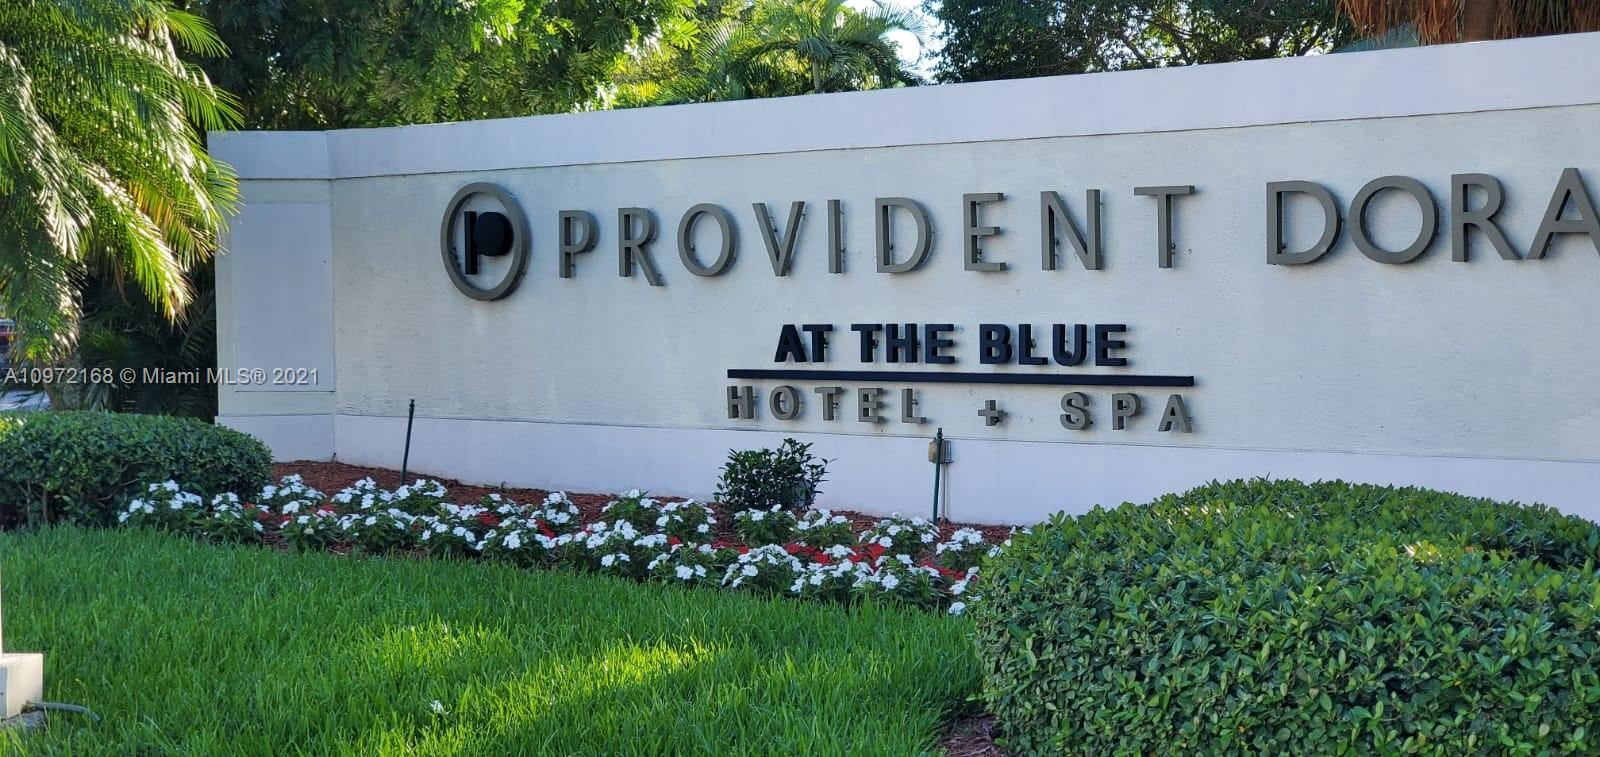 5300 NW 87th Ave #207, Doral, FL 33178 - #: A10972168